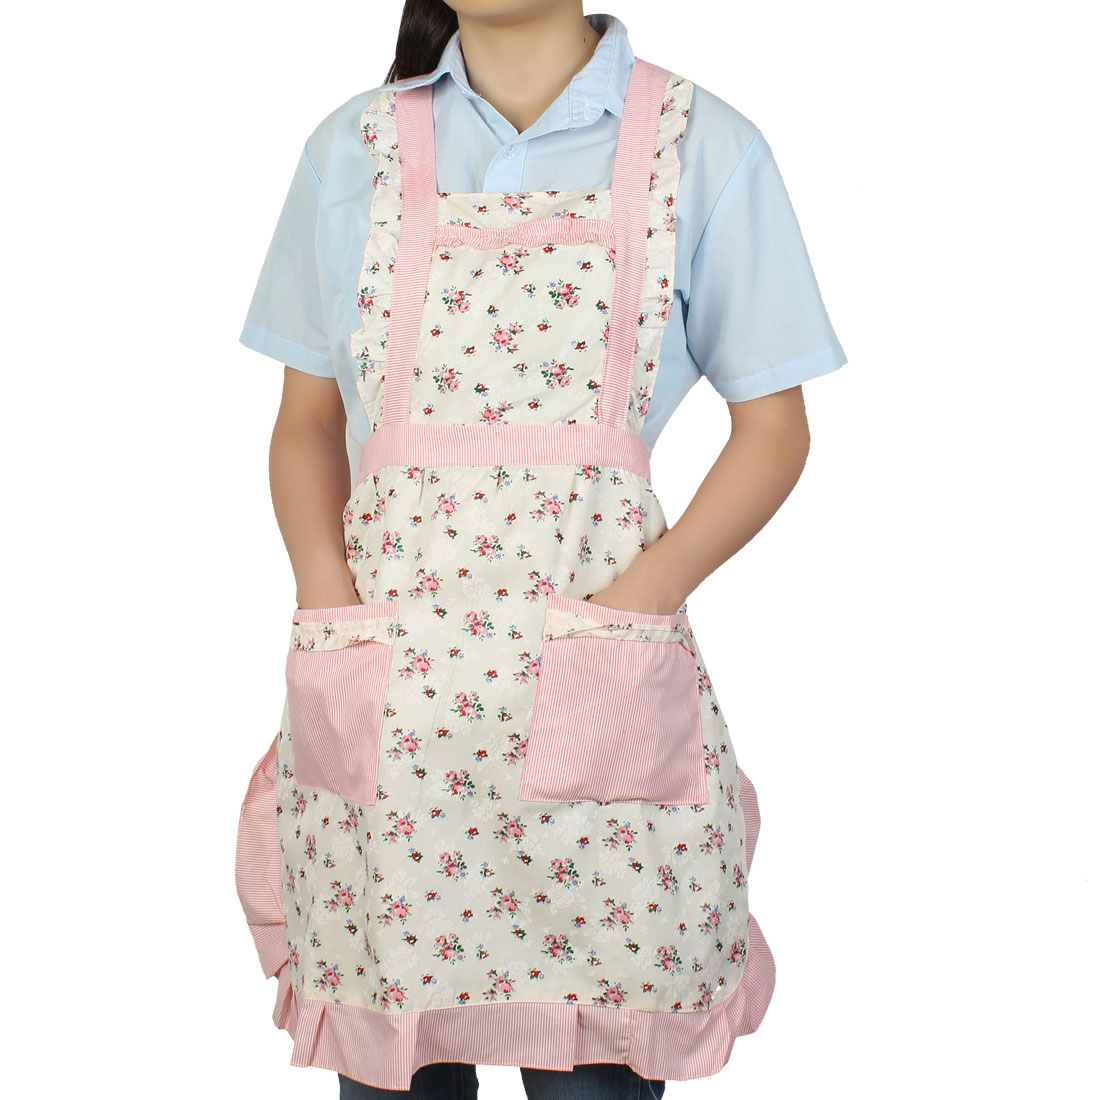 Cooking Floral Printed 2 Front Stripe Pocket Self Tie Bib Aprons 83cm Long